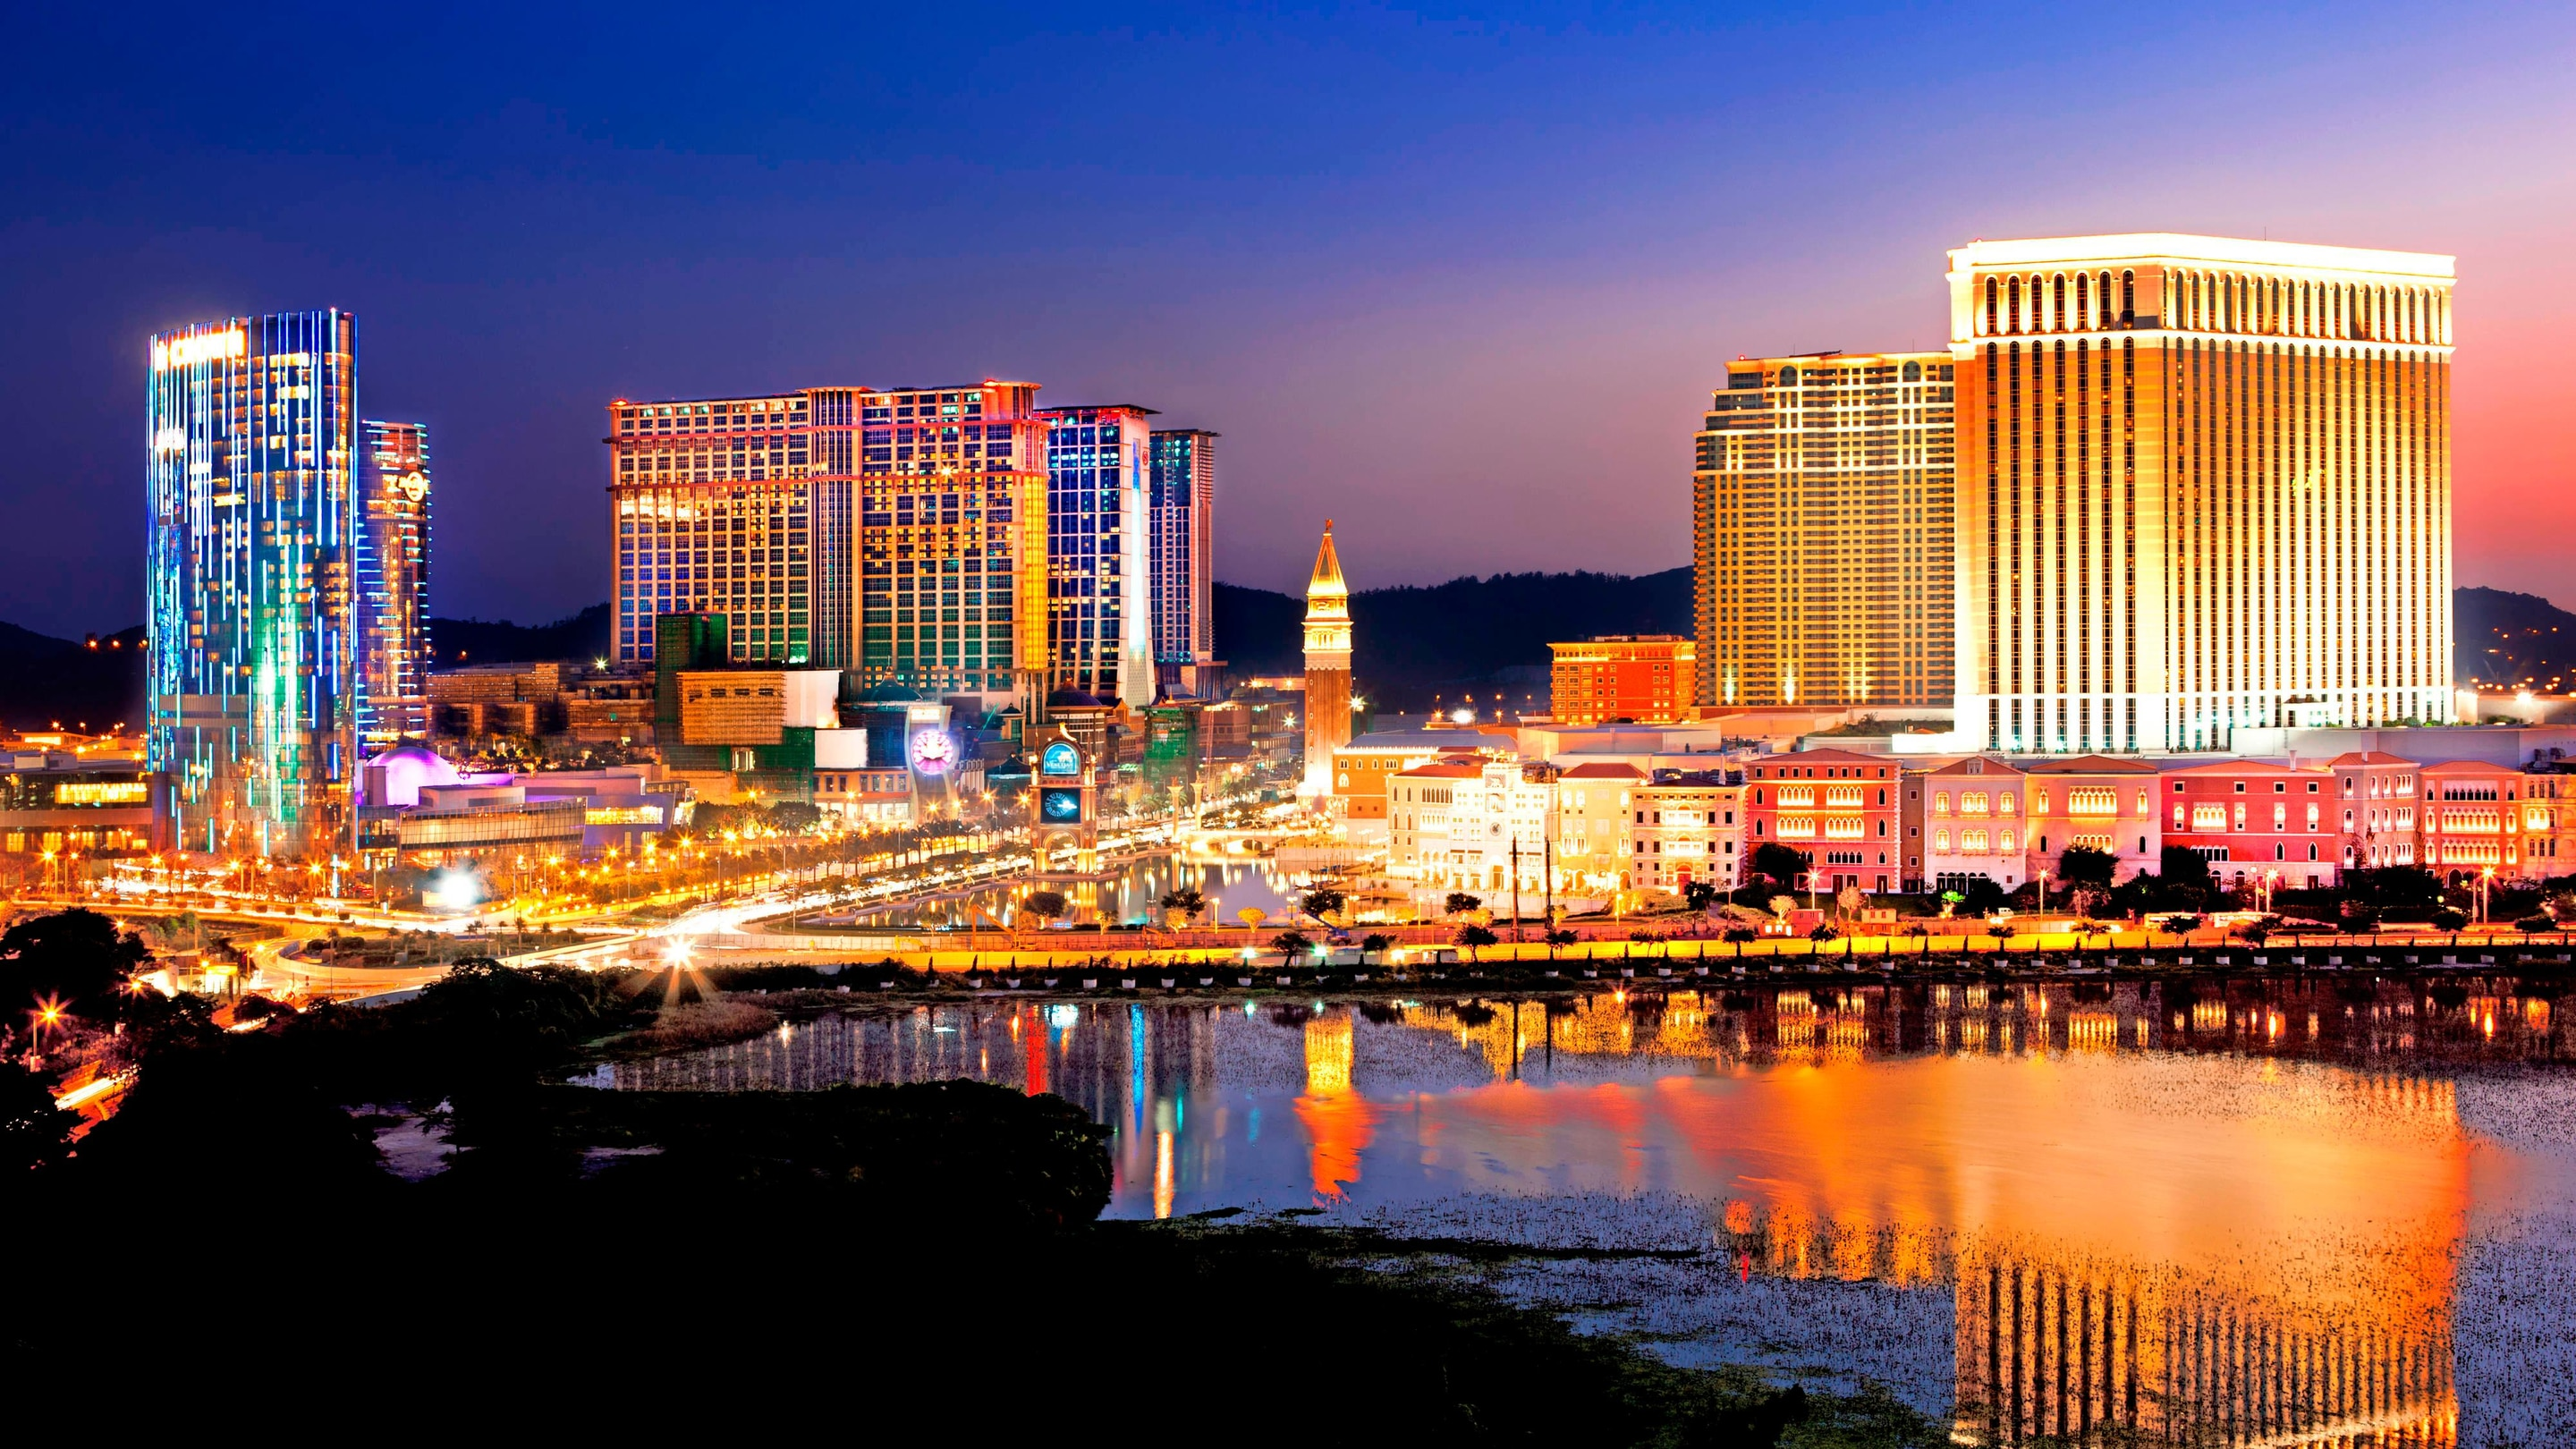 Panoramic evening view of cotai strip and city lights